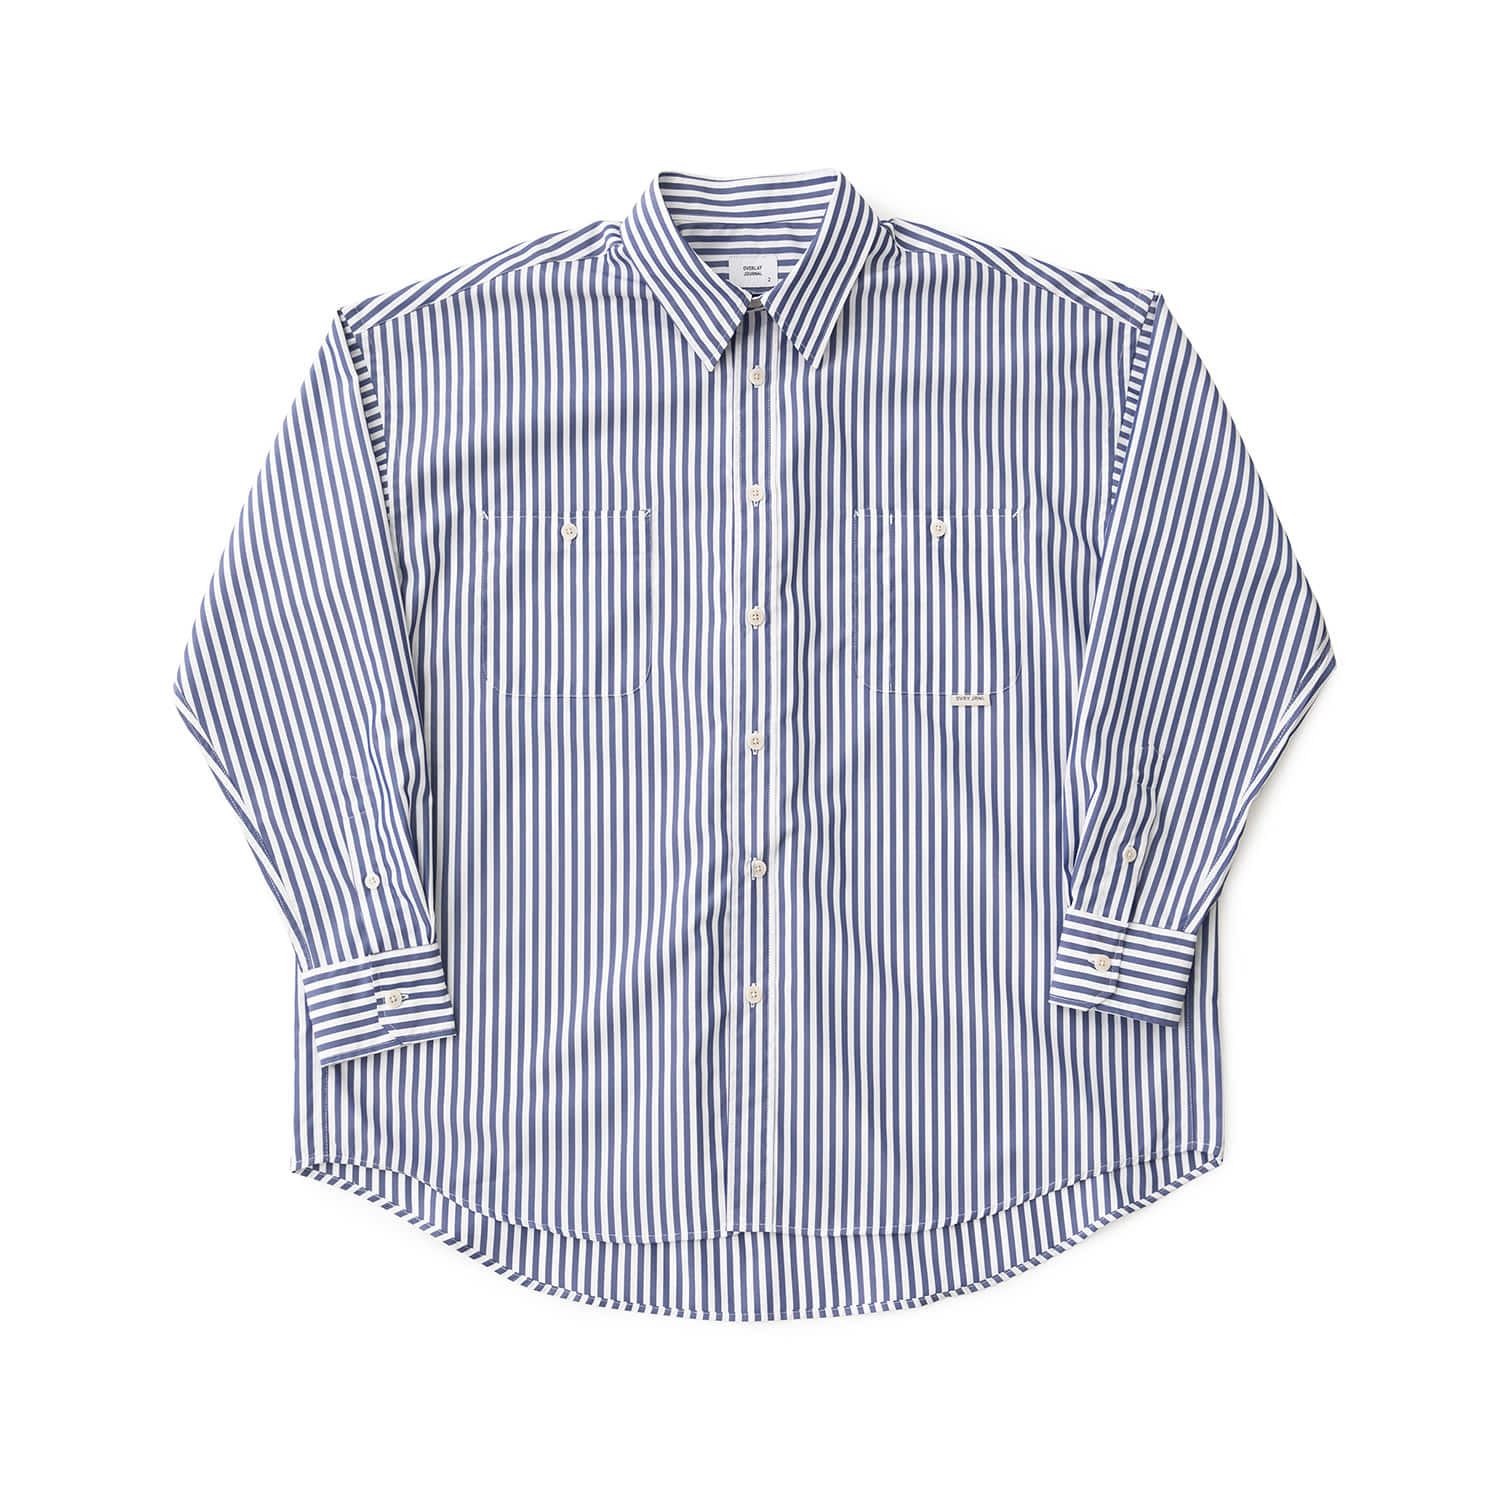 Broad Comfort Shirt (Stripe)